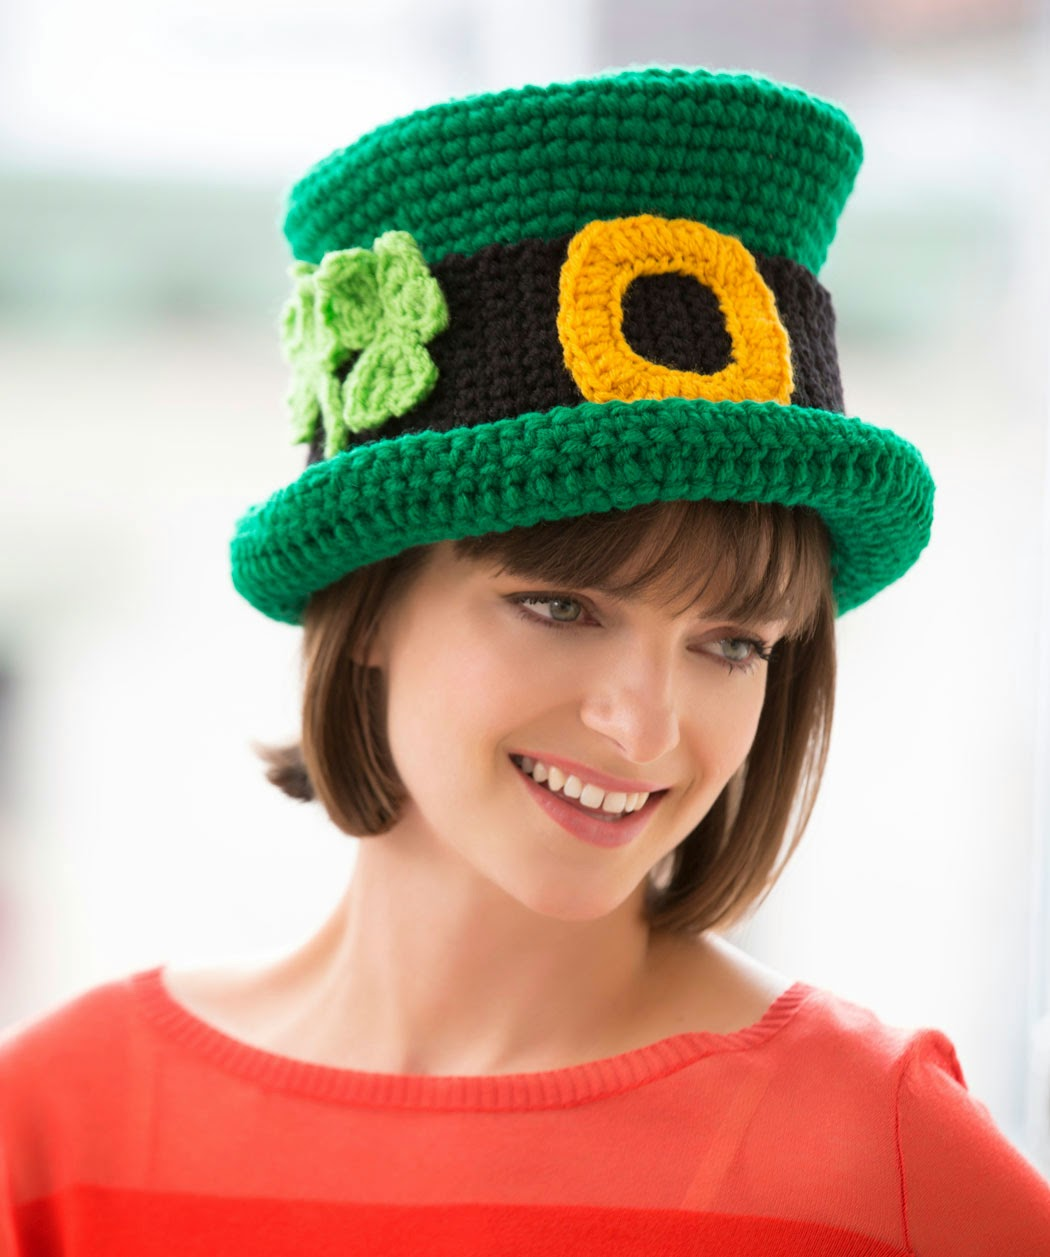 Crochet Pattern Leprechaun Hat : The Hippy Hooker: St Pattys Day Free Crochet Pattern Roundup!